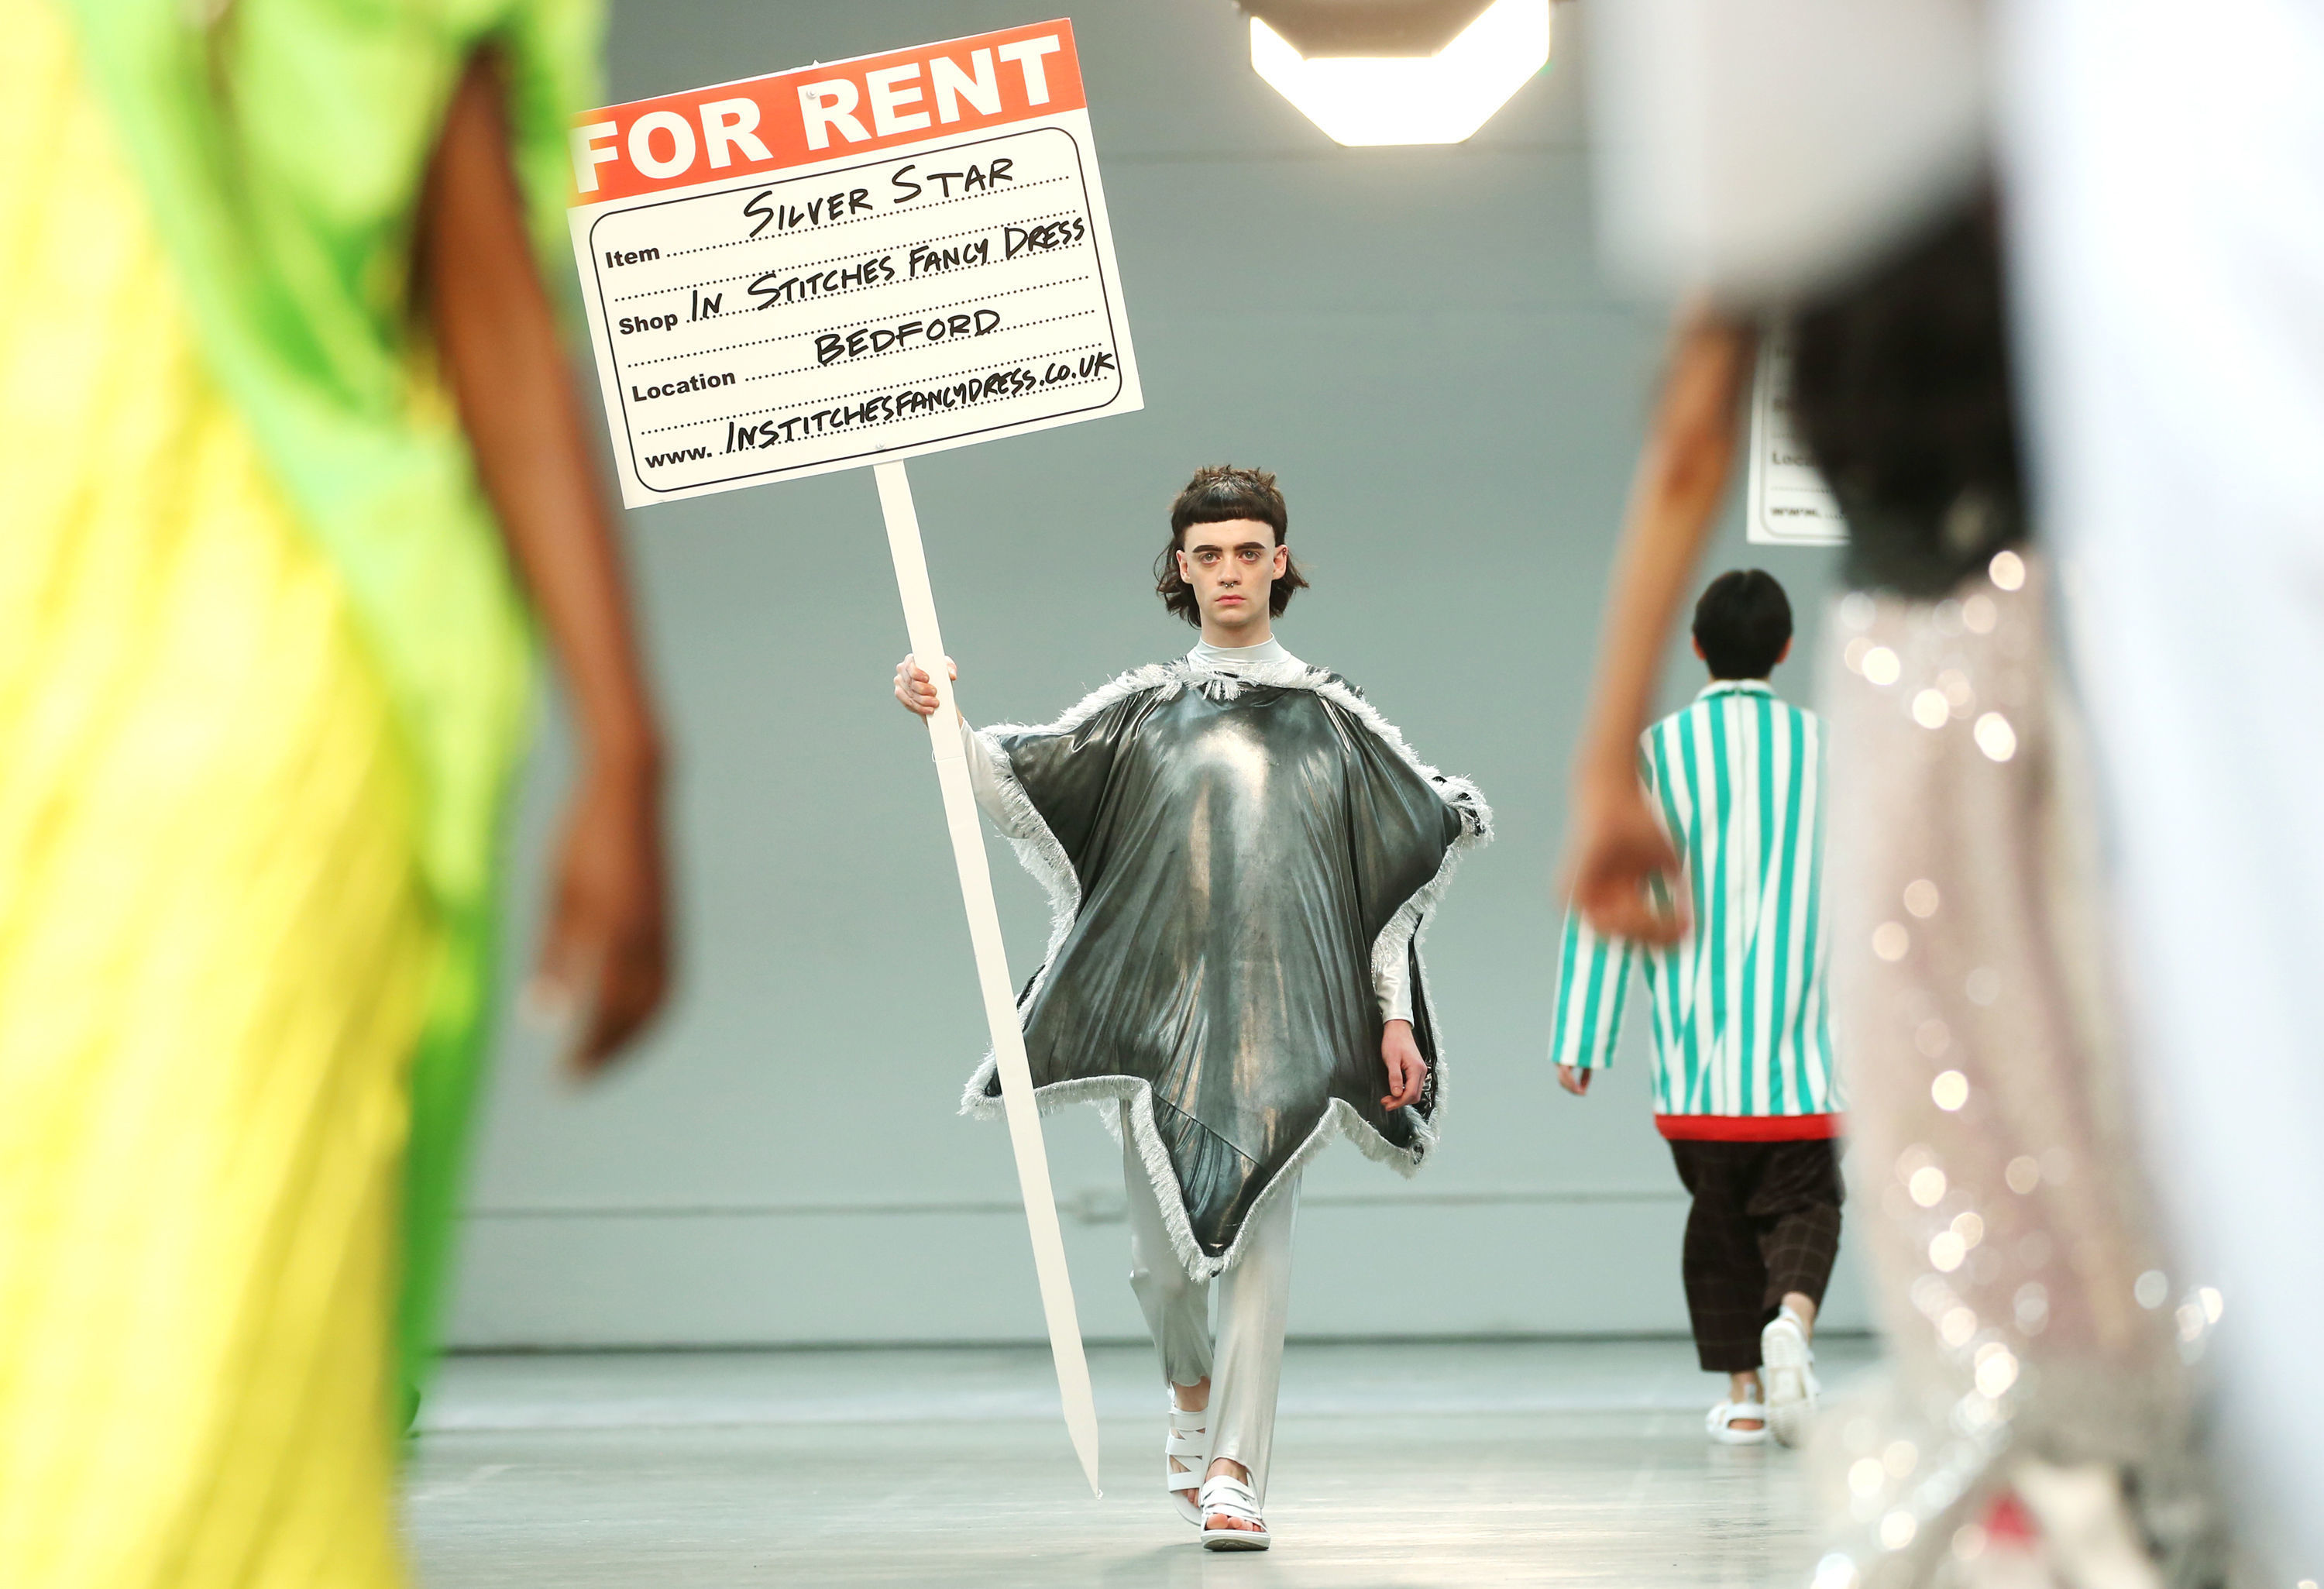 A model on the Rottingdean Bazaar catwalk during the MAN show at London Fashion Week Men's SS19 show held at the BFC Show Space, London.